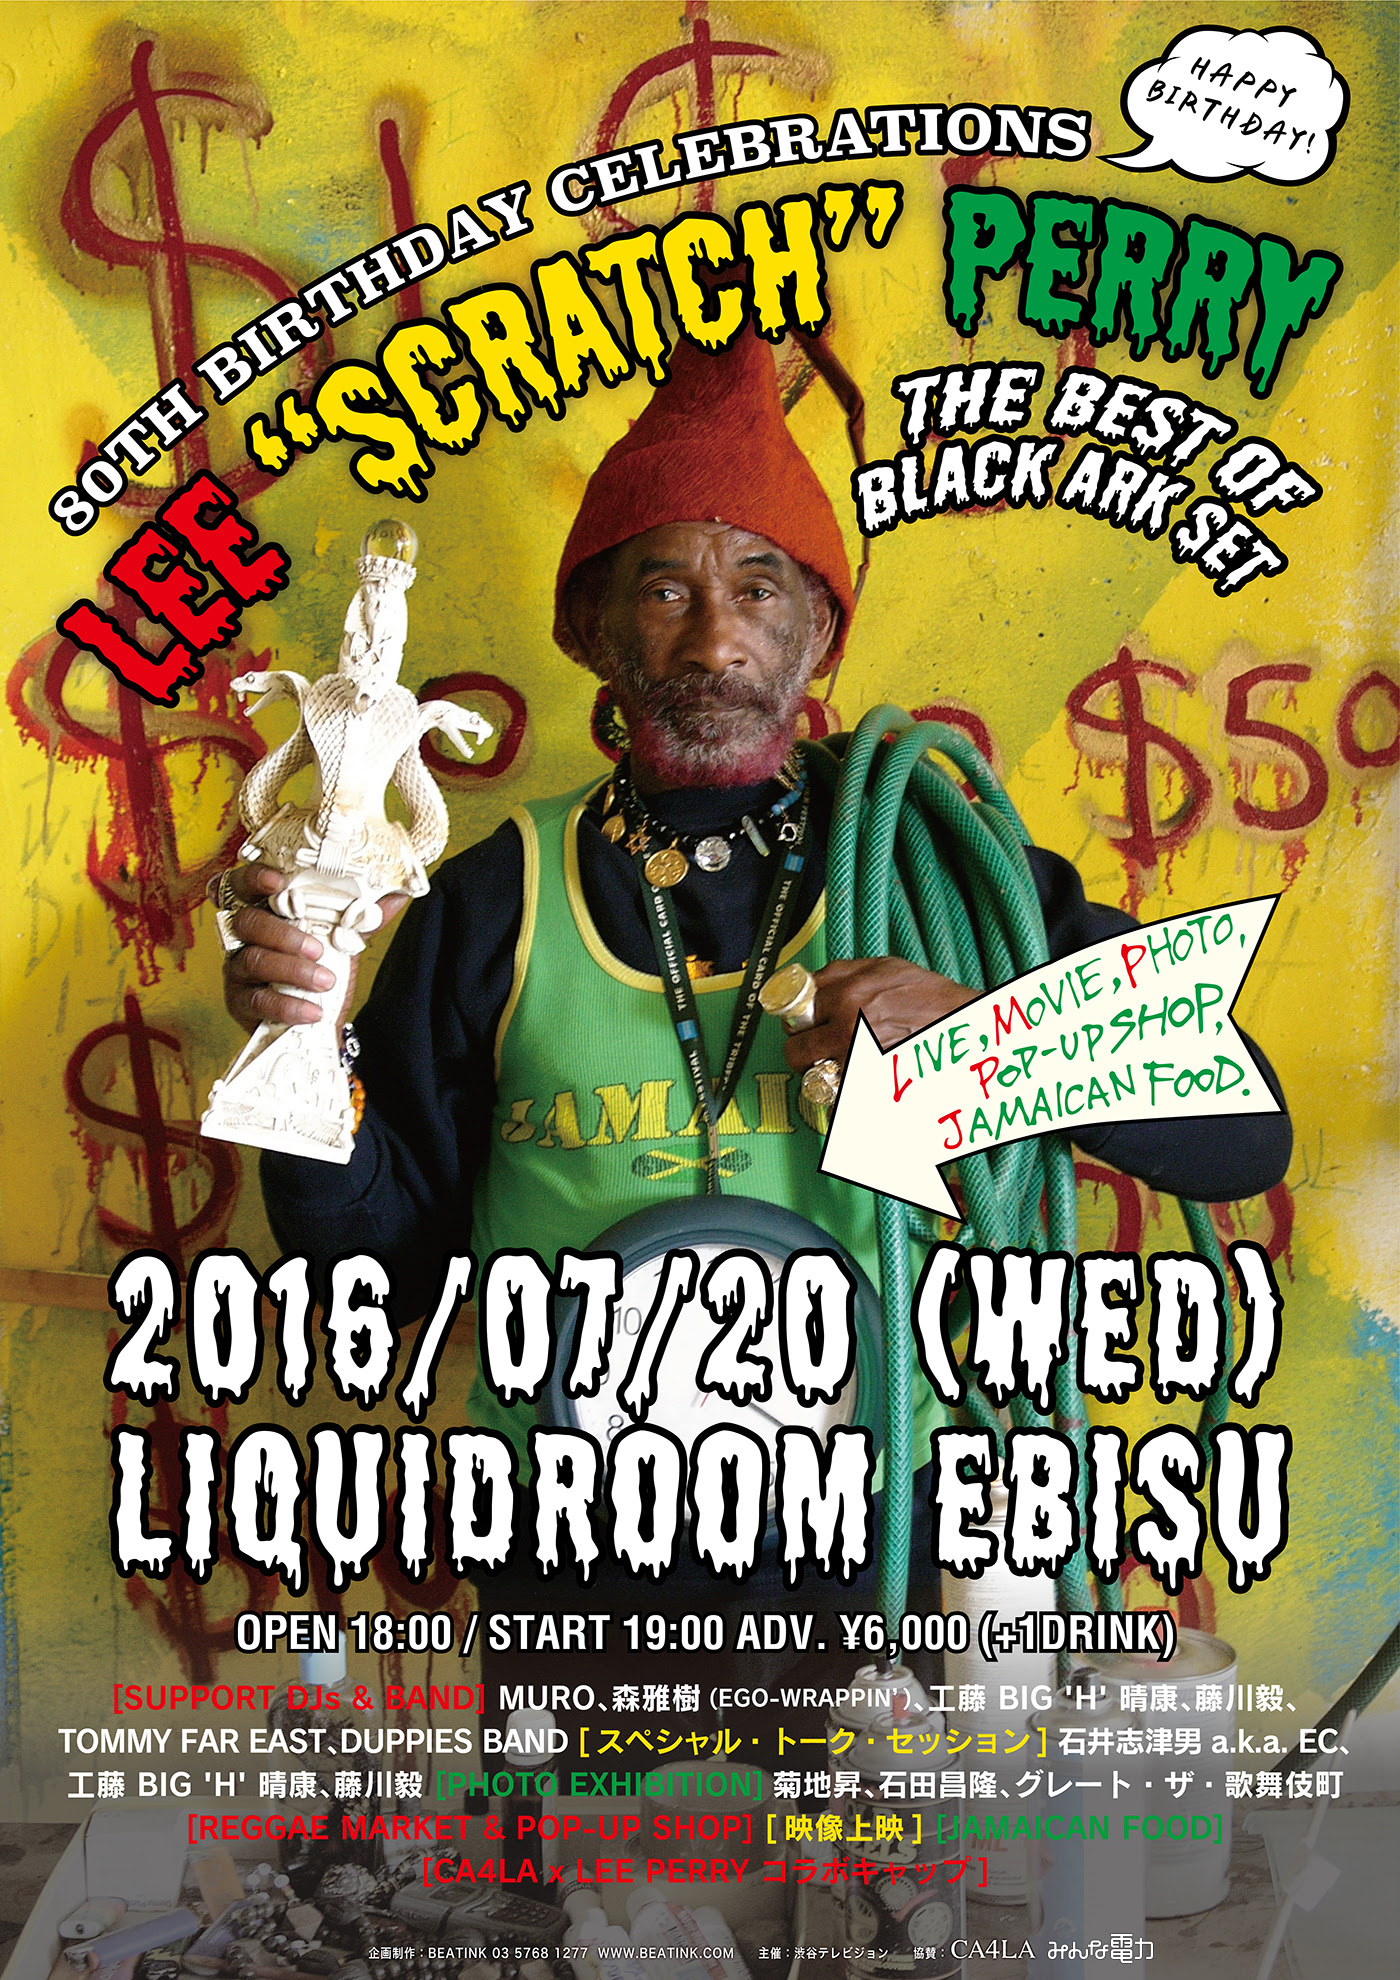 lee scratch perry 80th birthday LIQUIDROOM